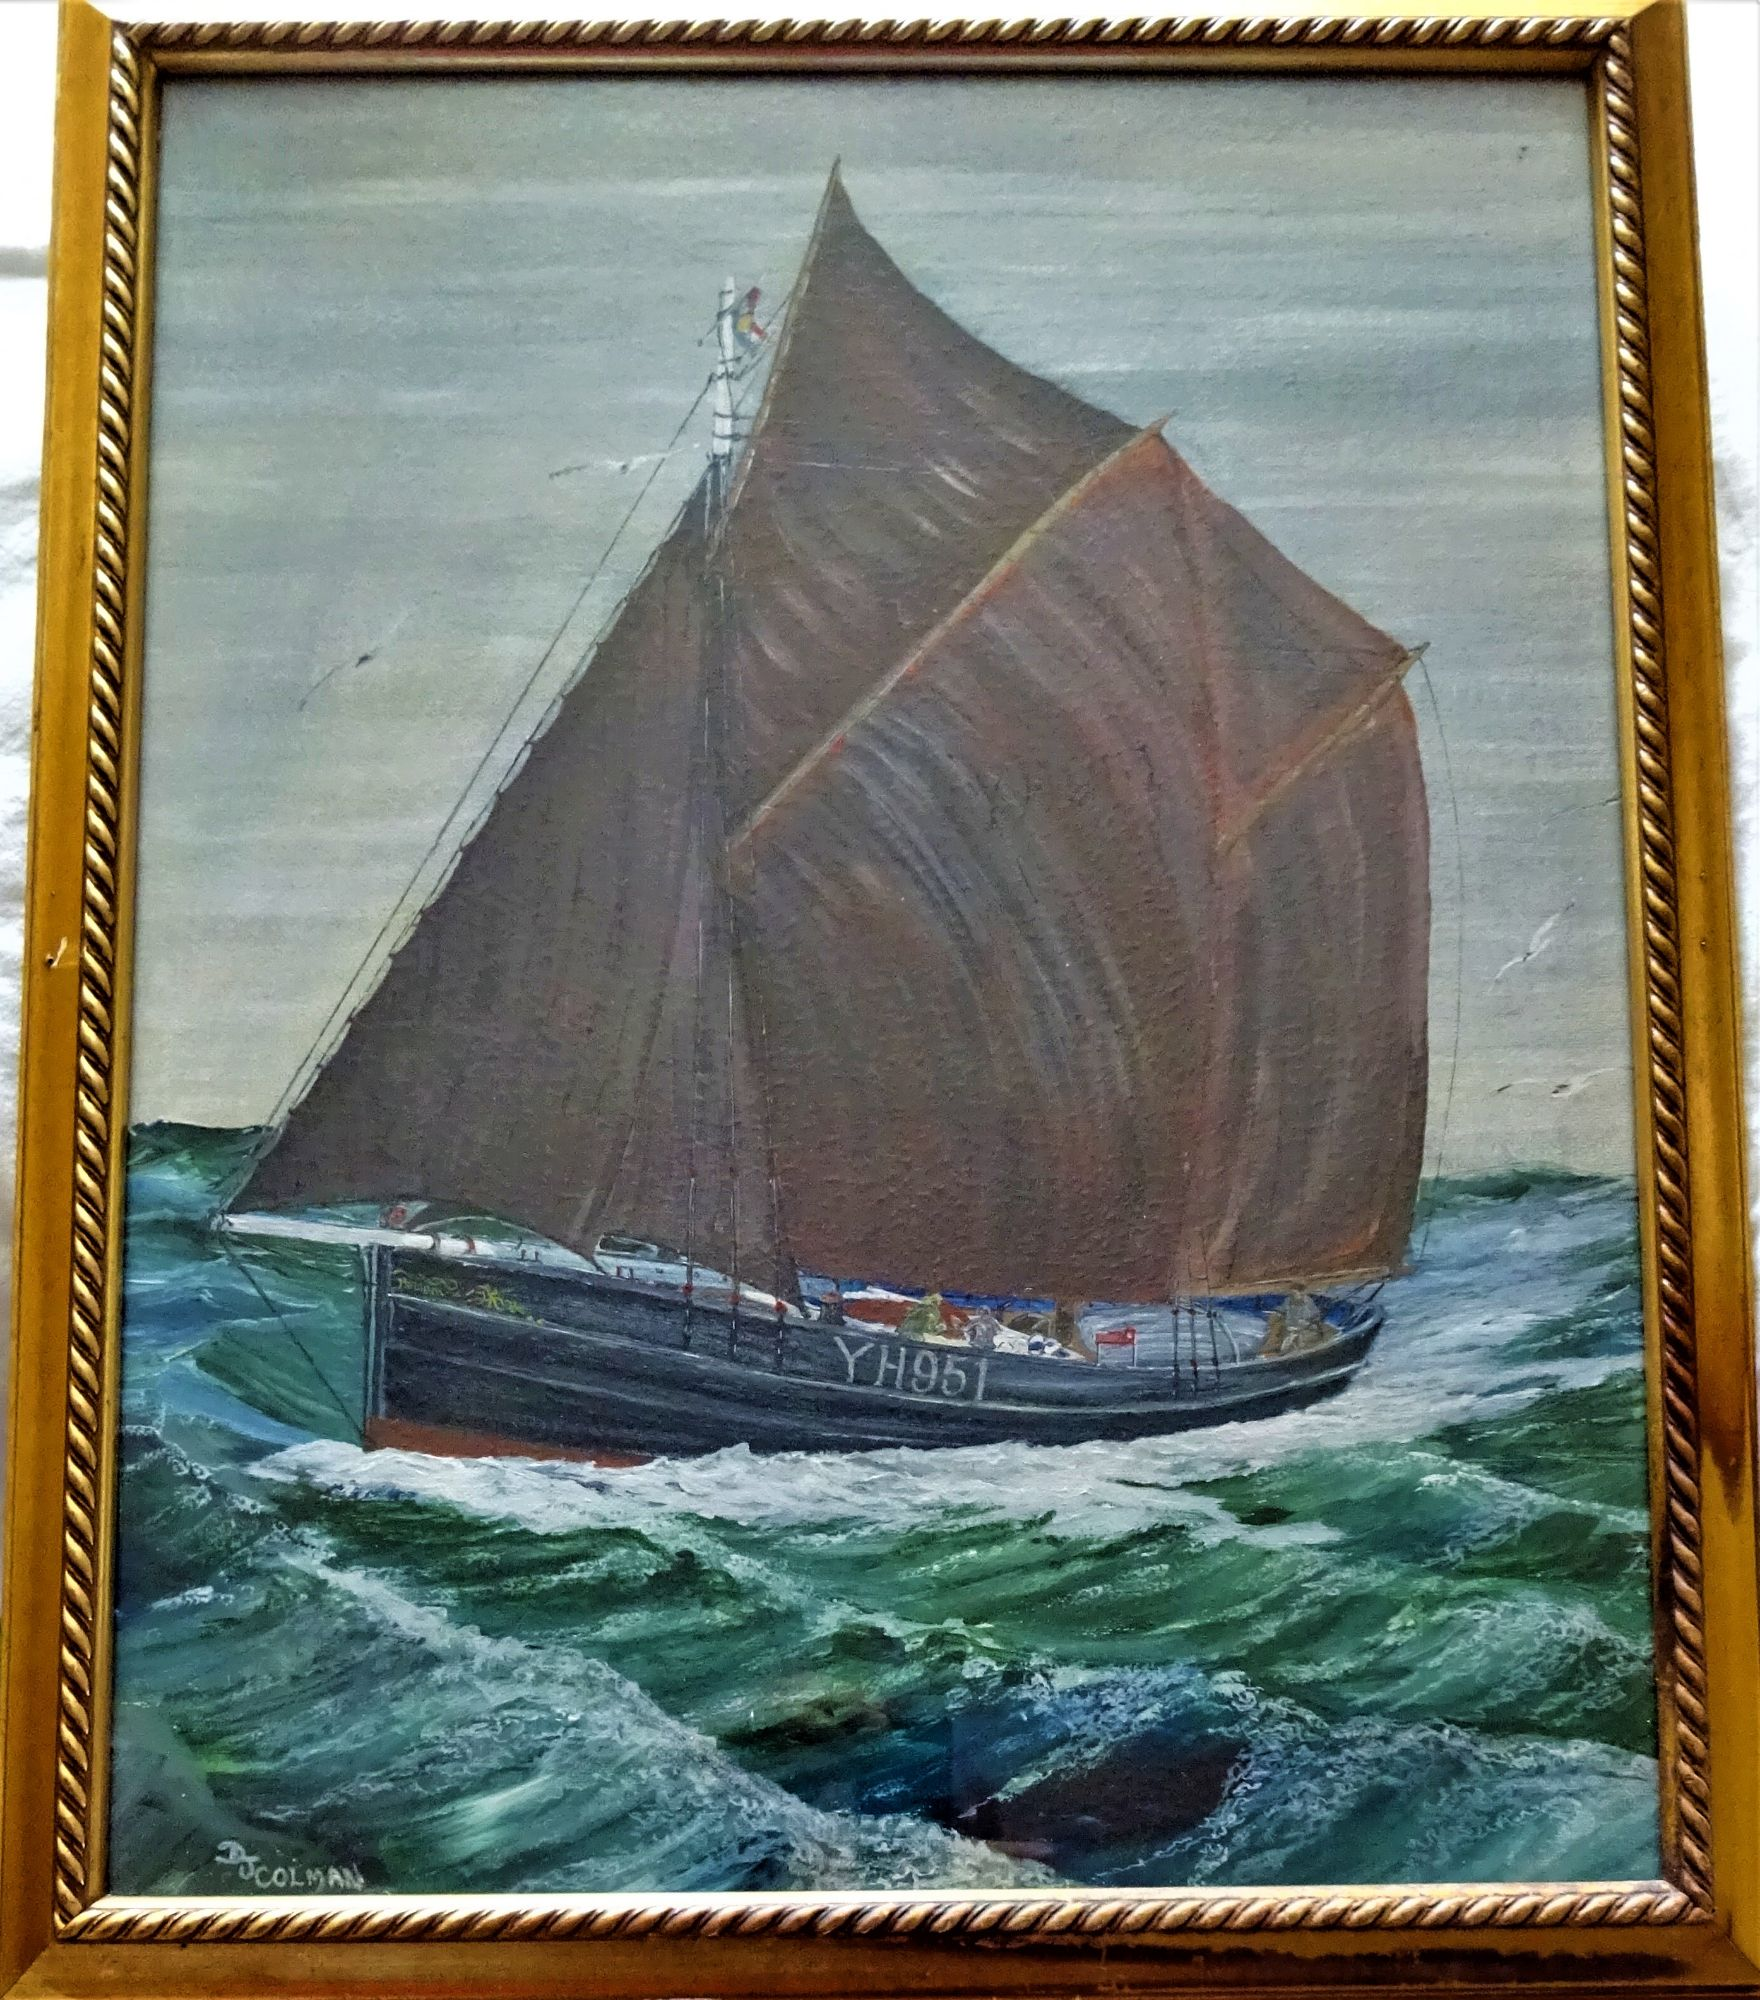 Colman, DJ, Fishing Vessel Paradox YH951, oil on board, signed, c1960.